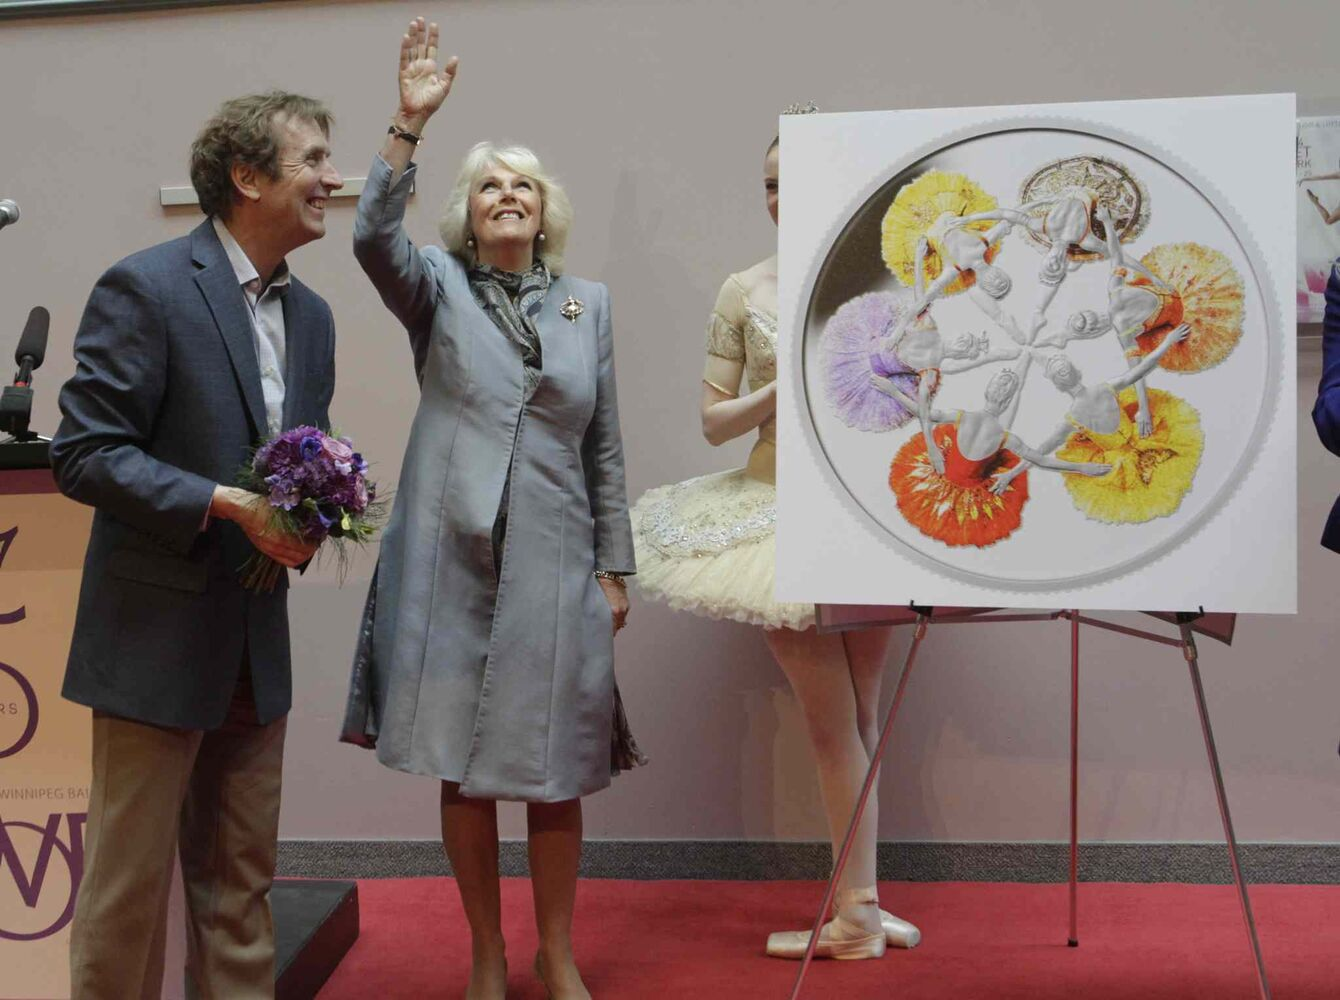 Camilla, Duchess of Cornwall with RWB Artistic Director Andre Lewis during Canada's Royal Winnipeg Ballet building visit. At right is the new silver collector coin to commemorate the 75th anniversary of Canada's Royal Winnipeg Ballet.   (Wayne Glowacki / Winnipeg Free Press)